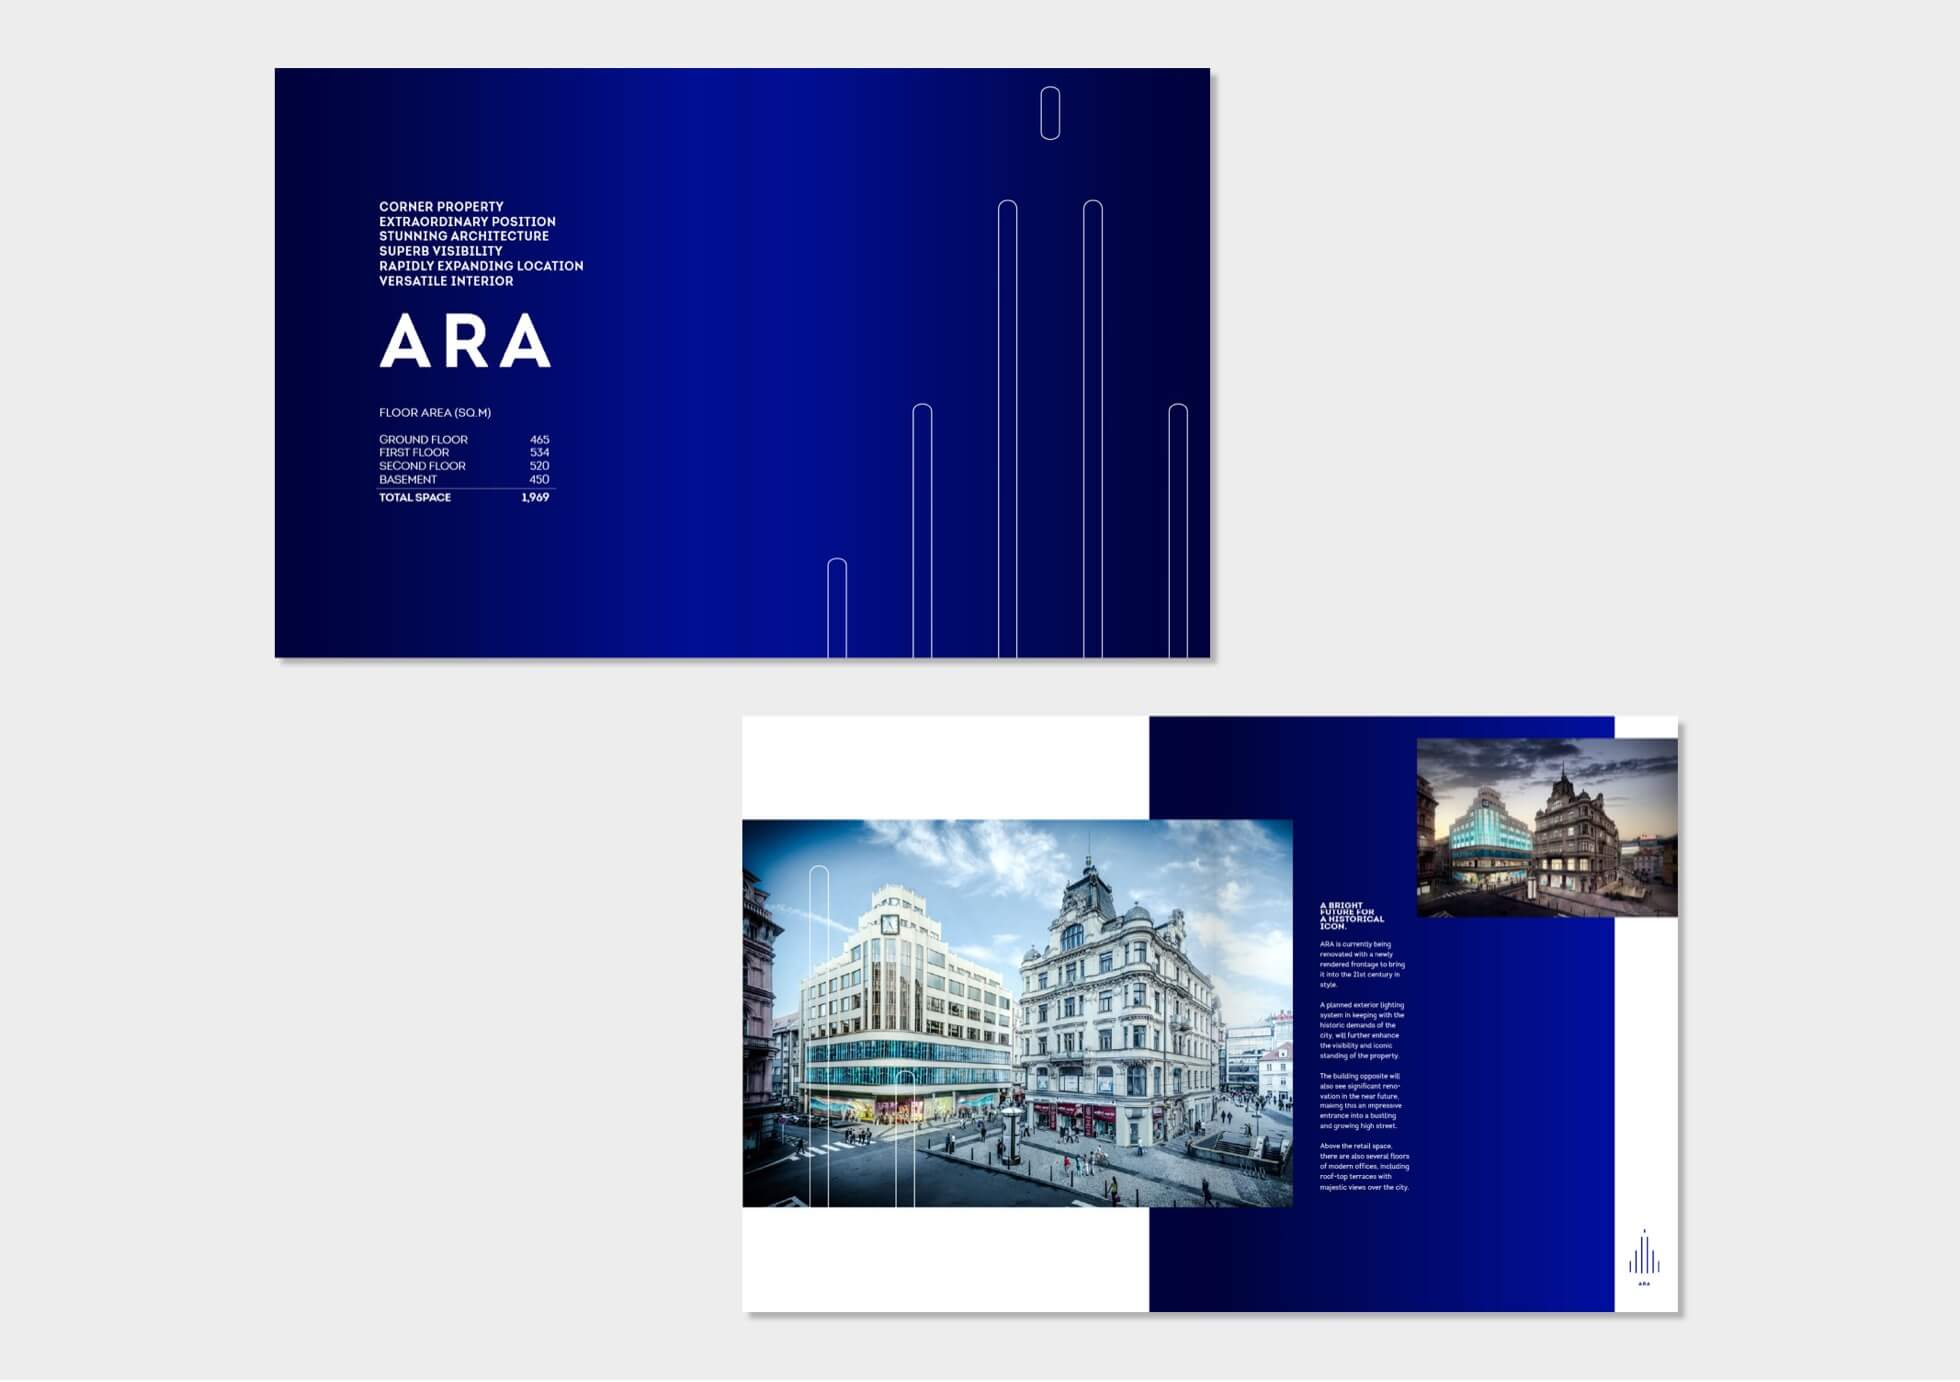 real estate offices-ara-004-brochure.jpg